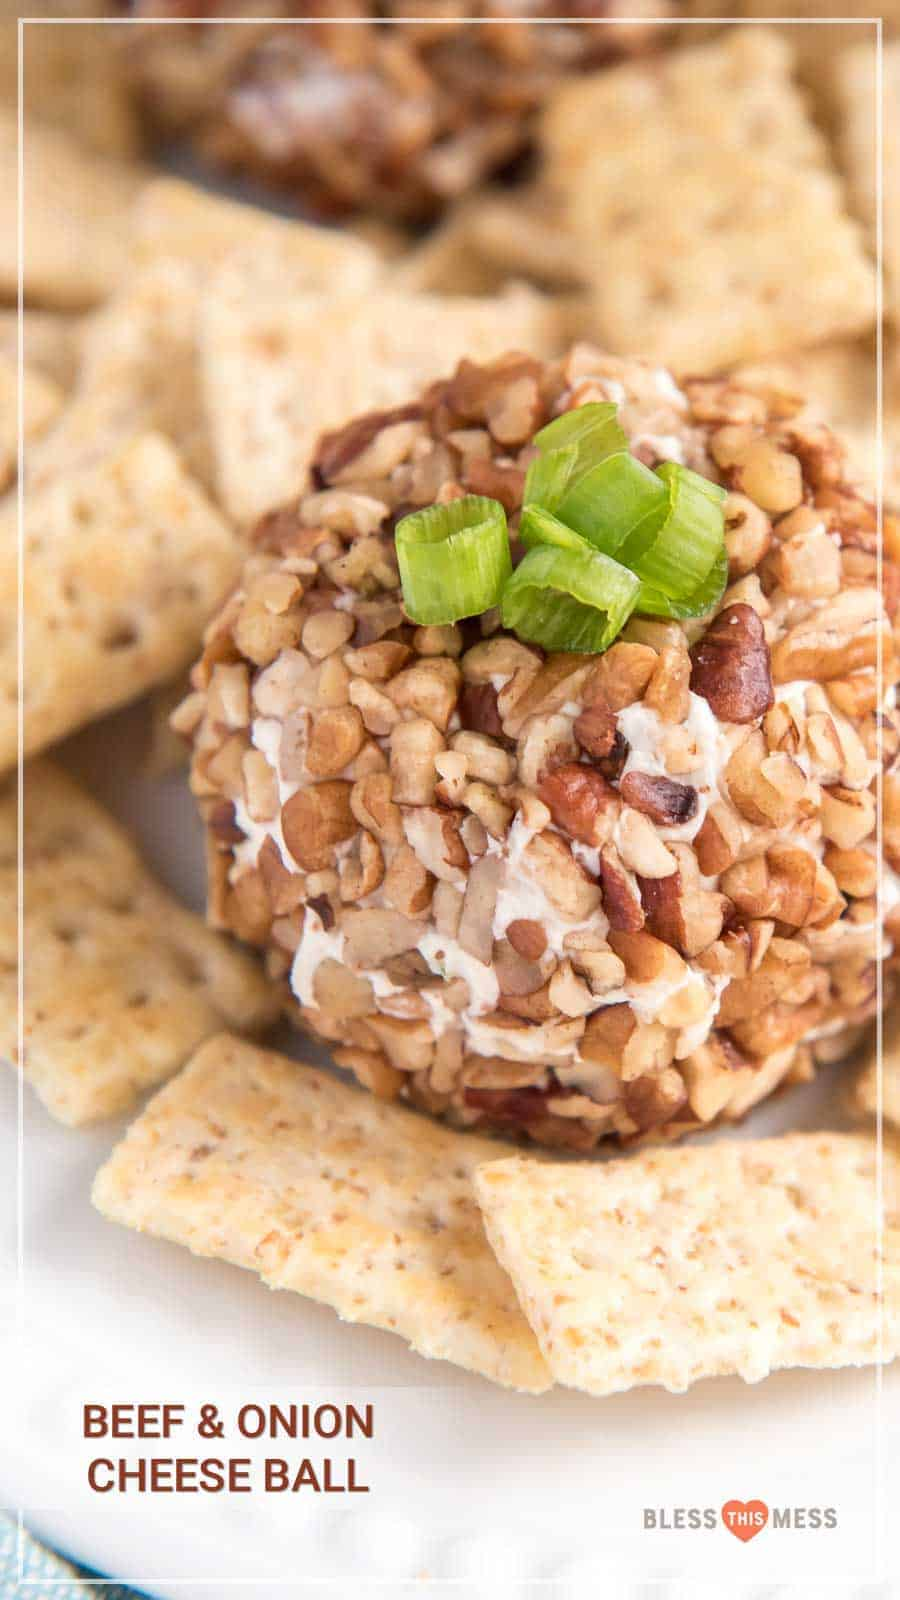 You can never go wrong with a cheese ball, especially when hosting a holiday gathering! Salty, crunchy, and cheesy, it's the perfect appetizer for guests to munch on as they visit with each other. I love how simple they are to throw together, and everyone loves snacking on them before a rich and hearty meal. #cheeseball #homemadecheeseball #cheeseballrecipe #easycheeseball #easyappetizer #partyappetizer #holidayappetizer